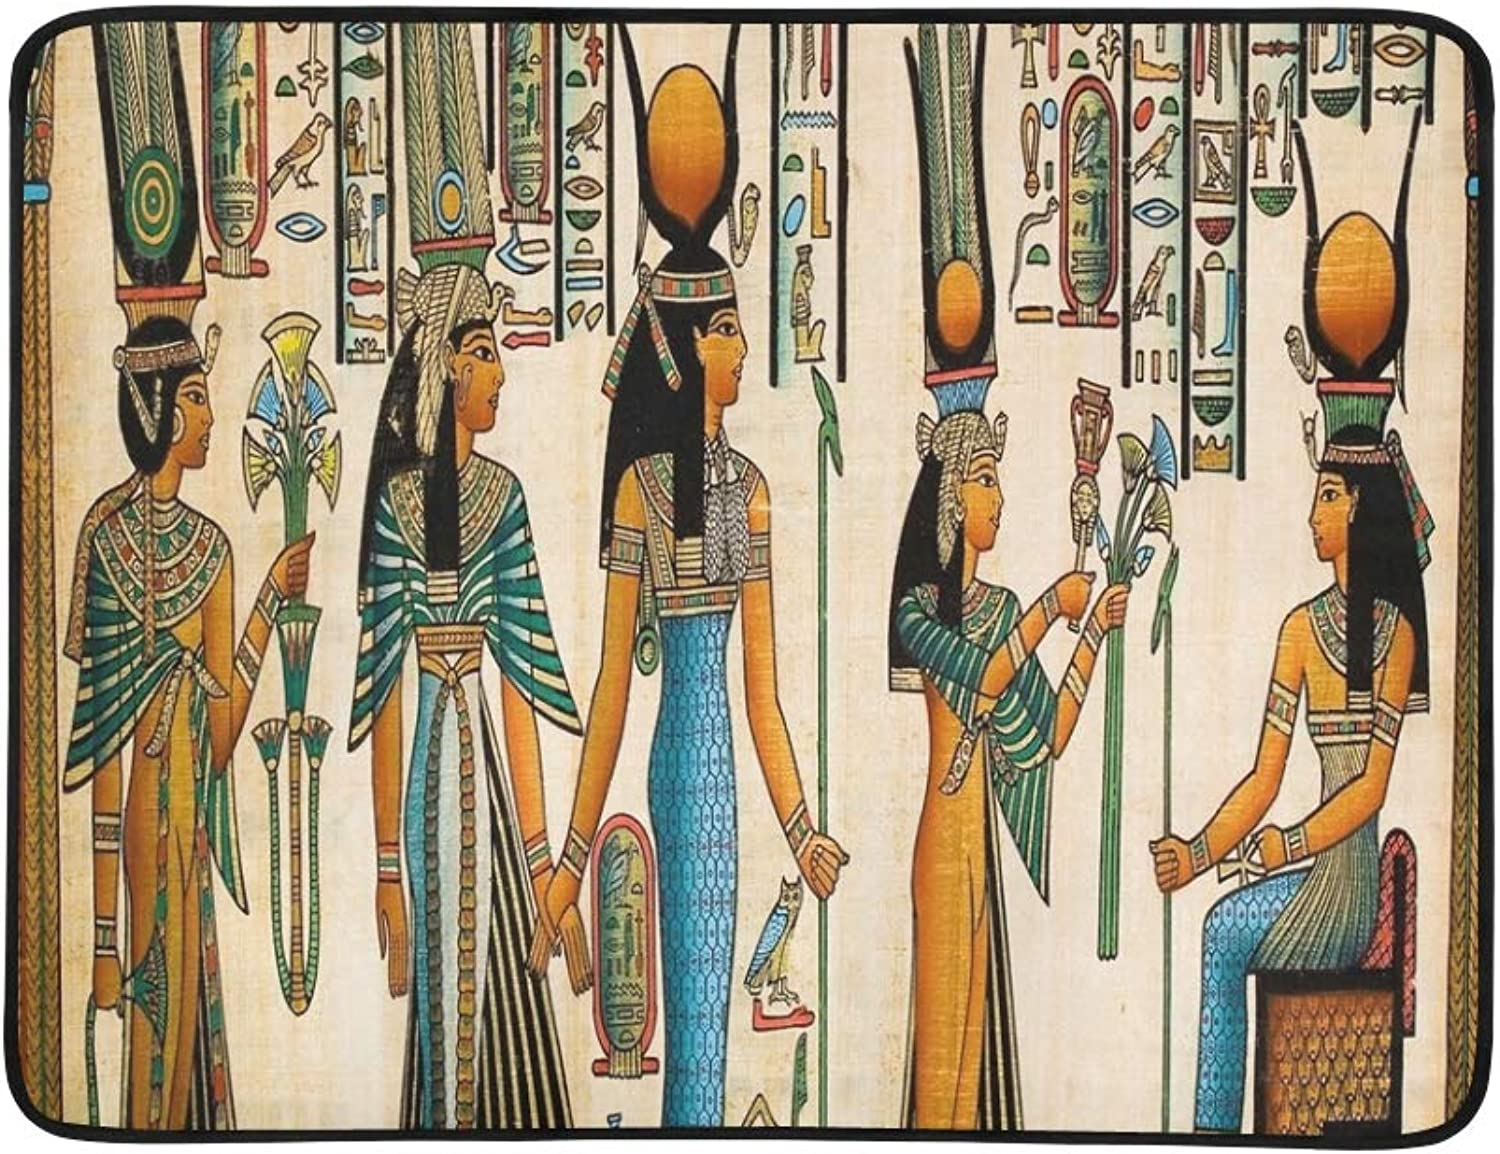 Papyrus Showing Queen Nefertari Making Offering Portable and Foldable Blanket Mat 60x78 Inch Handy Mat for Camping Picnic Beach Indoor Outdoor Travel